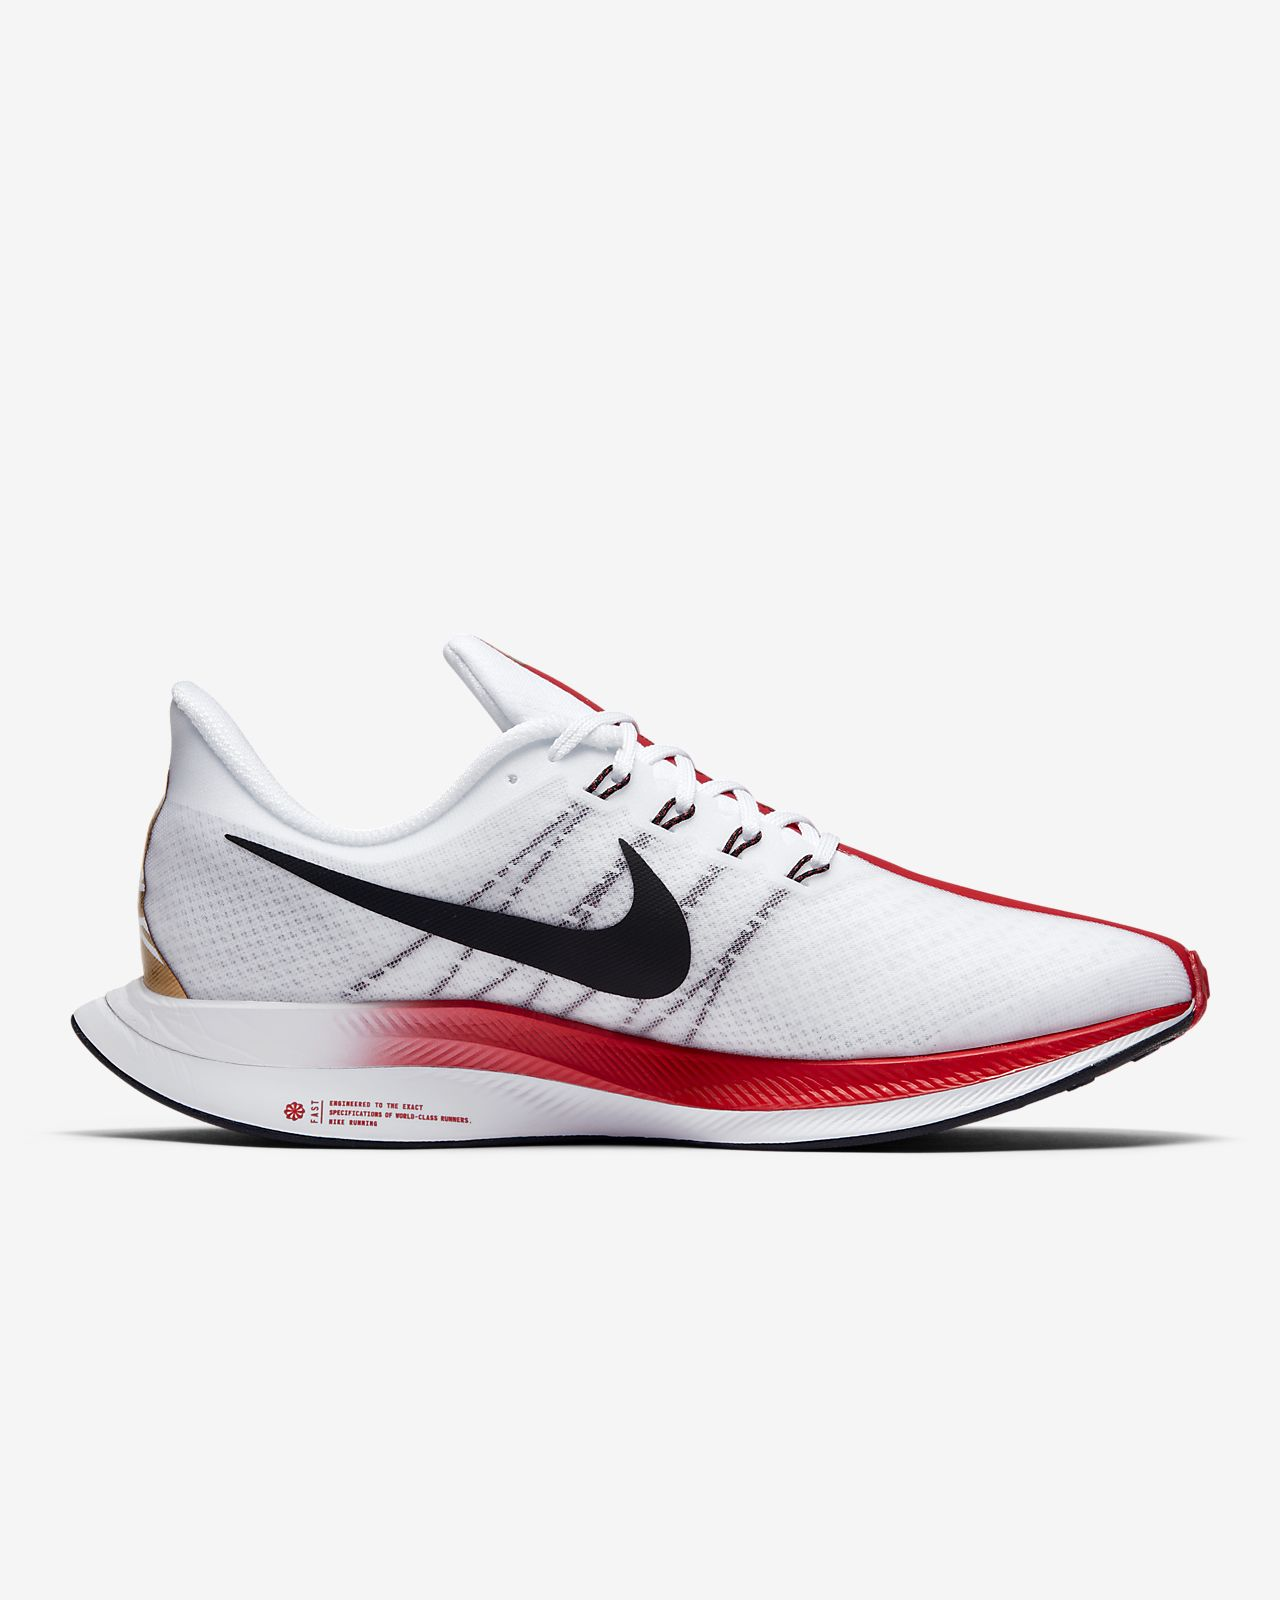 Nike Zoom Pegasus 35 Turbo Mo Running Shoe